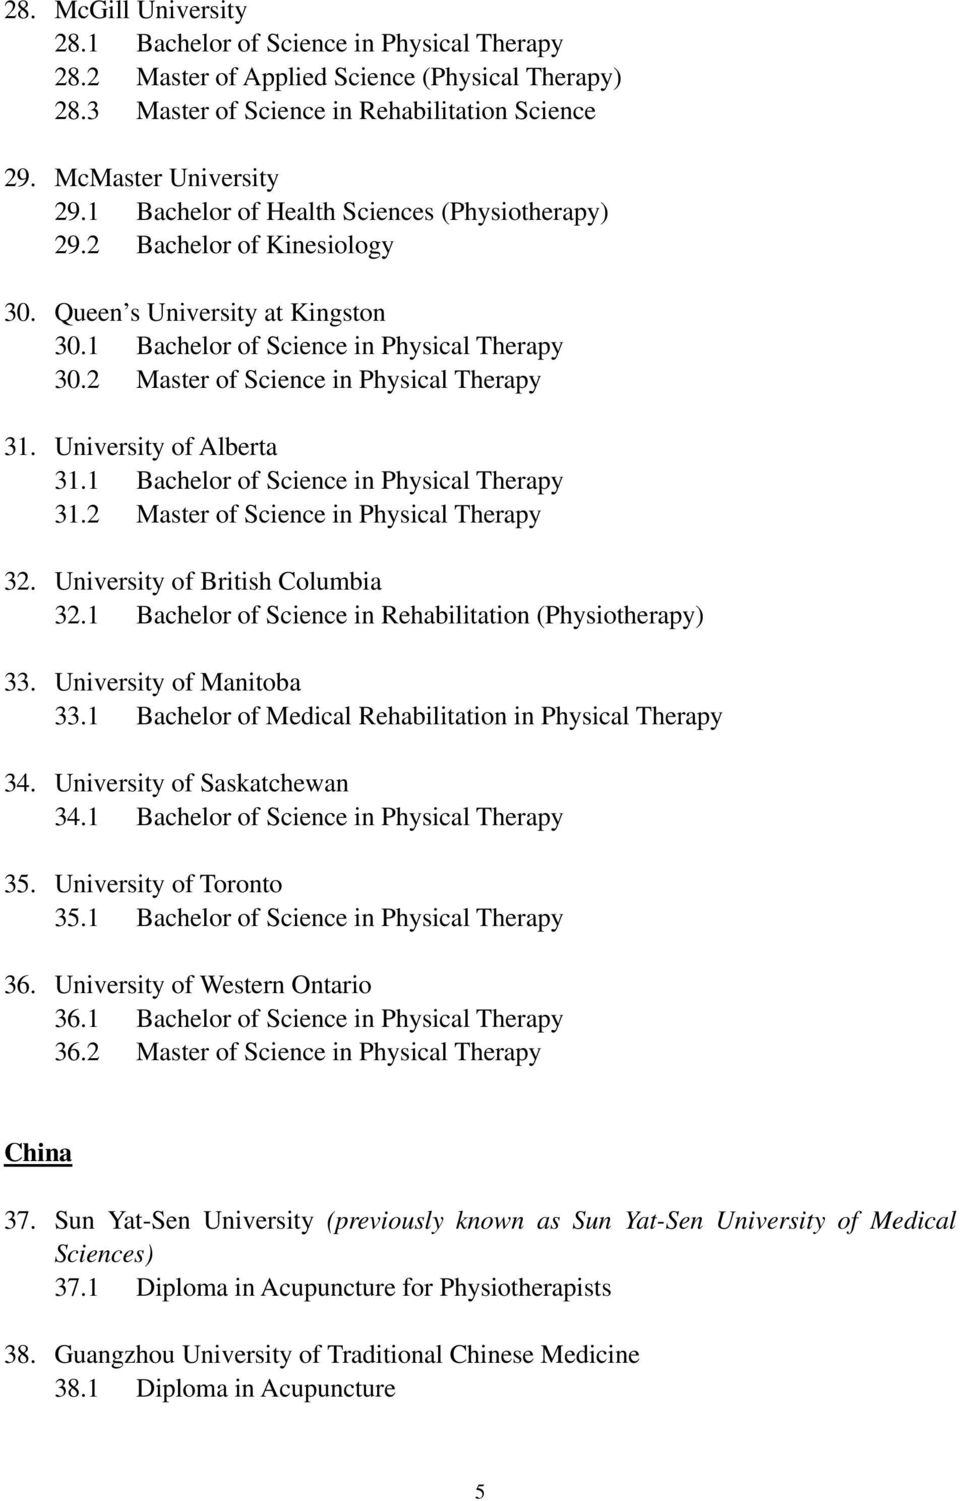 2 Master of Science in Physical Therapy 31. University of Alberta 31.1 Bachelor of Science in Physical Therapy 31.2 Master of Science in Physical Therapy 32. University of British Columbia 32.